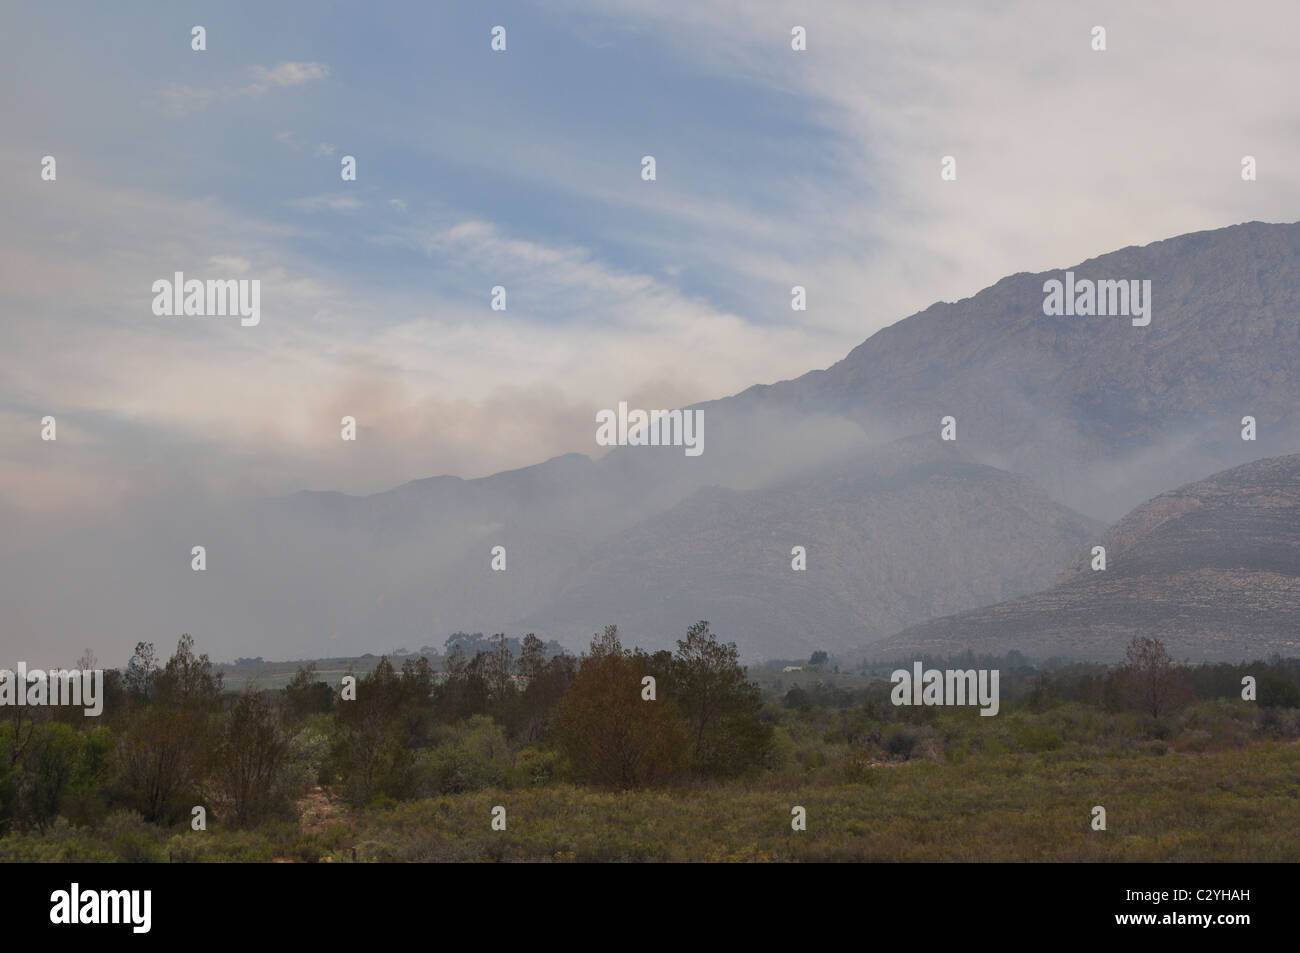 Bush Fire that is out of control, flames, smoke, landscape - Stock Image